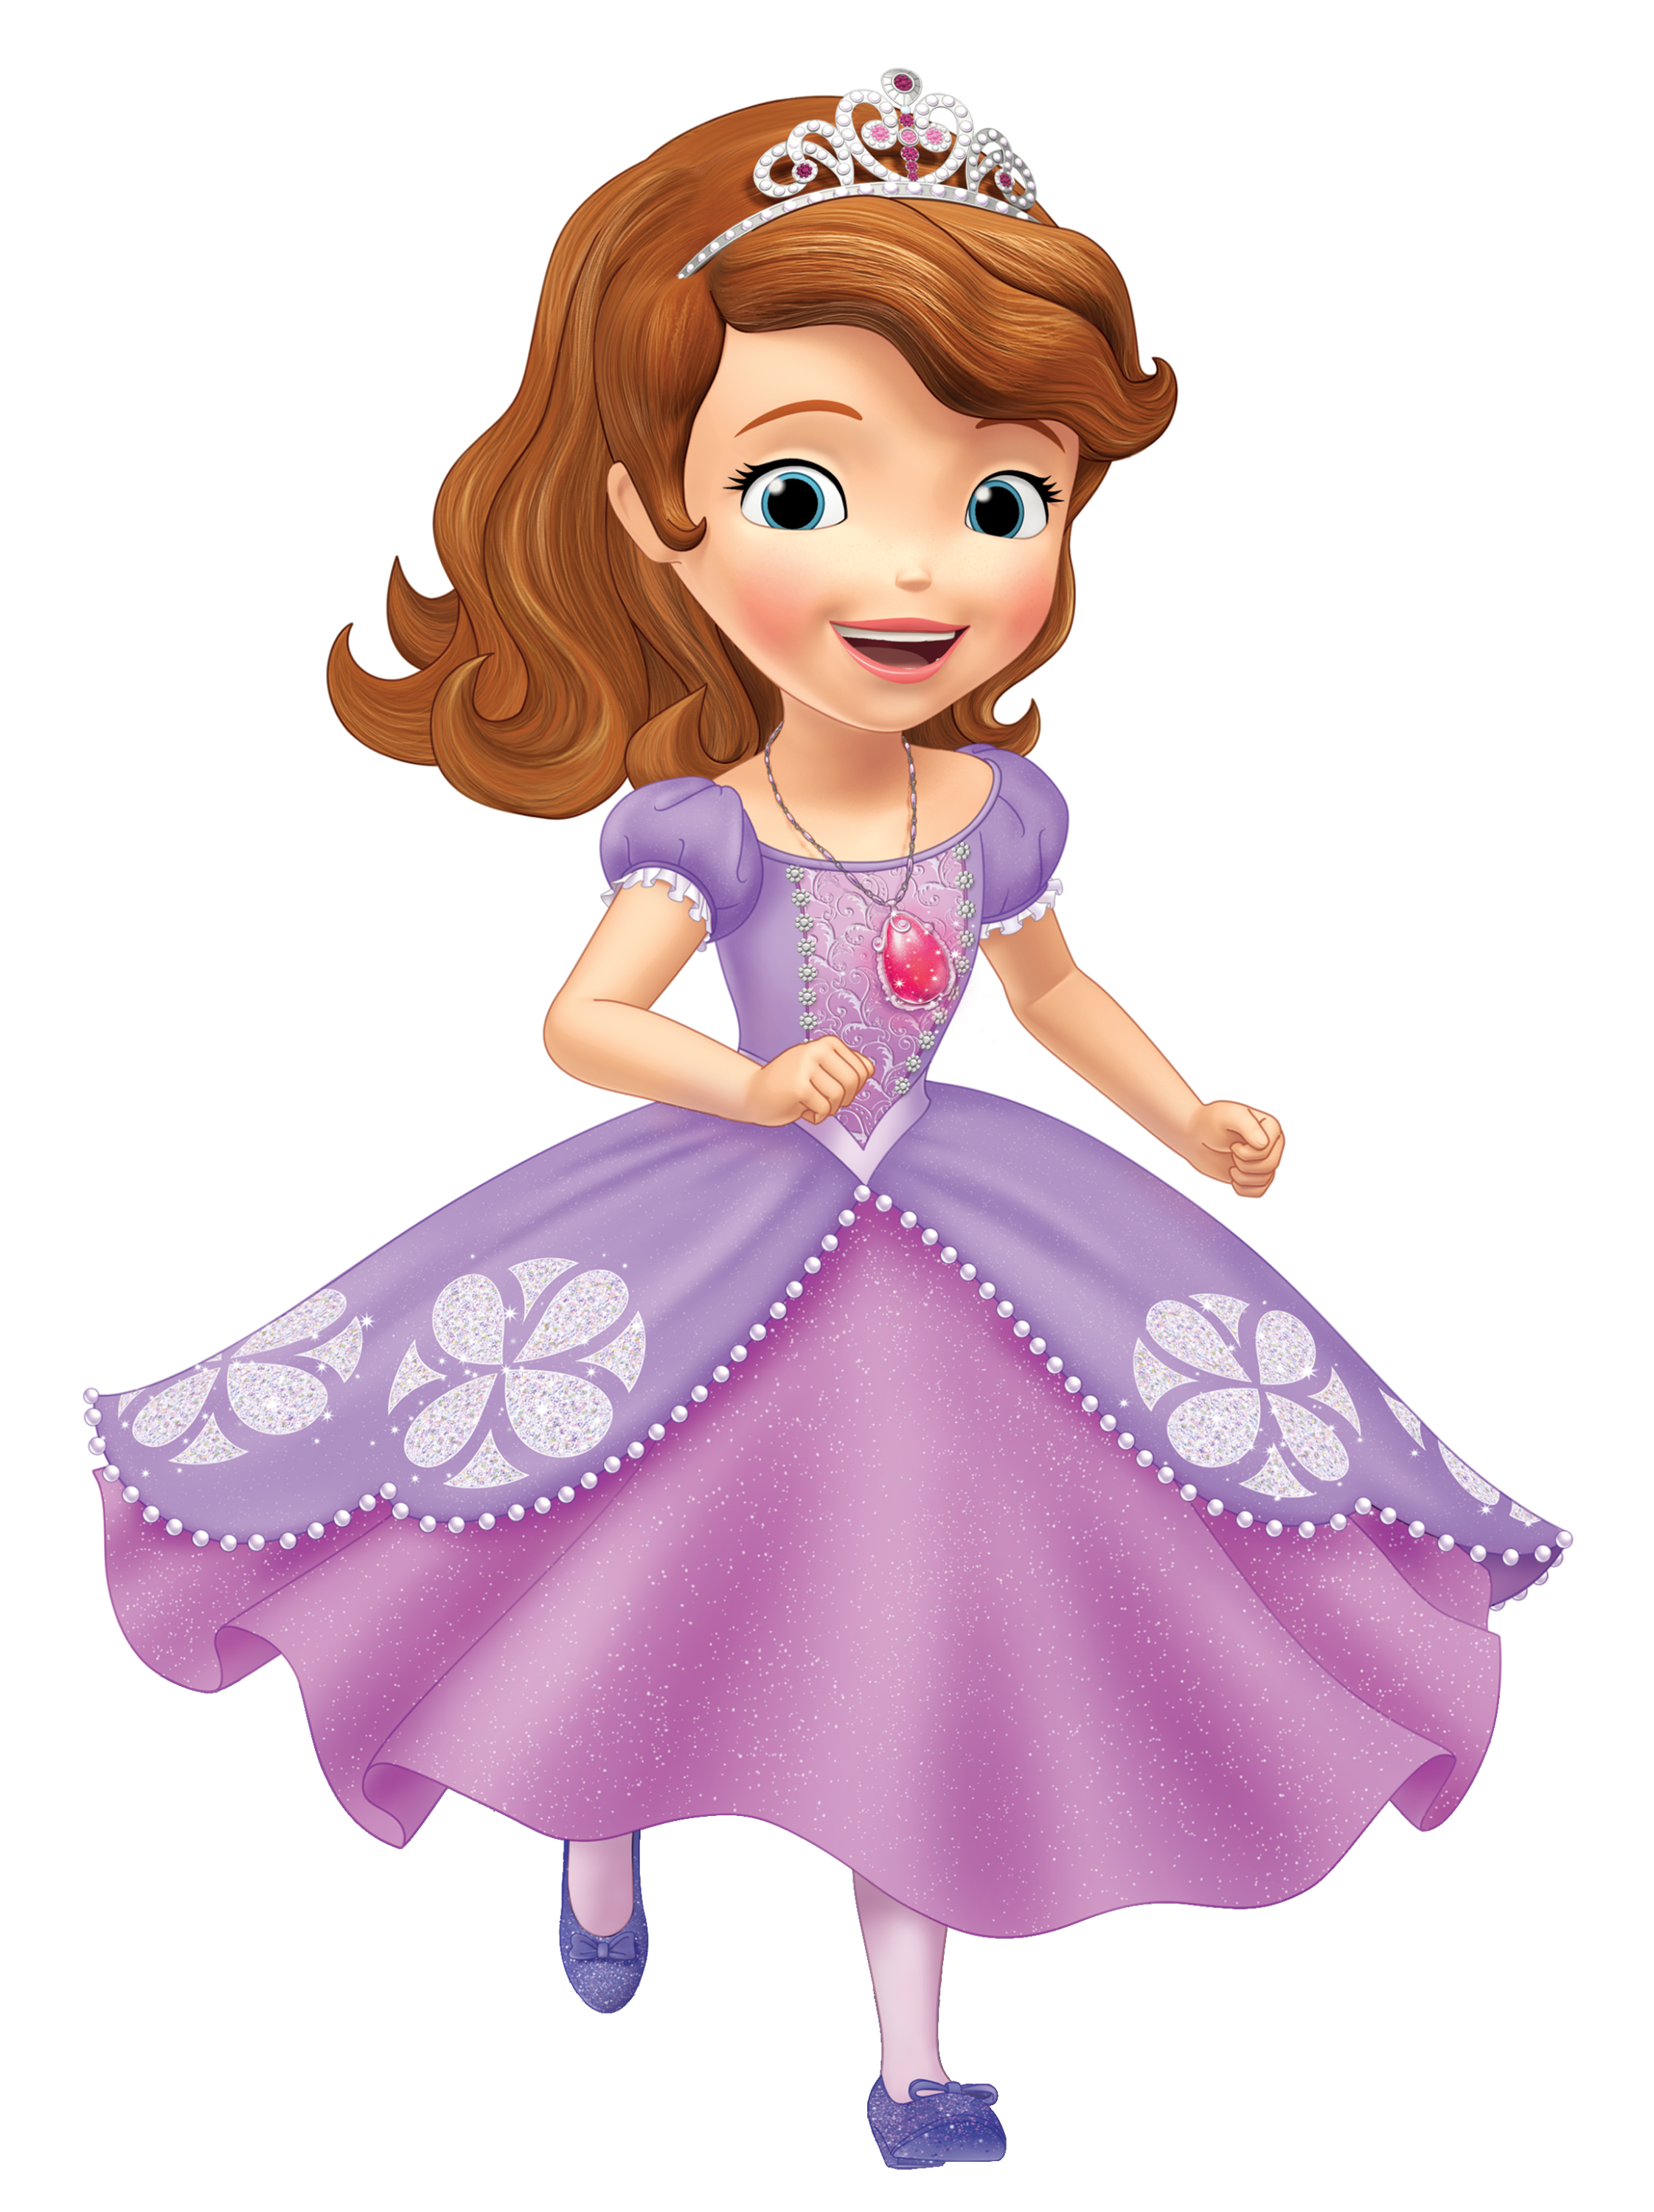 Pin by spencer hurst. Clipart castle sofia the first